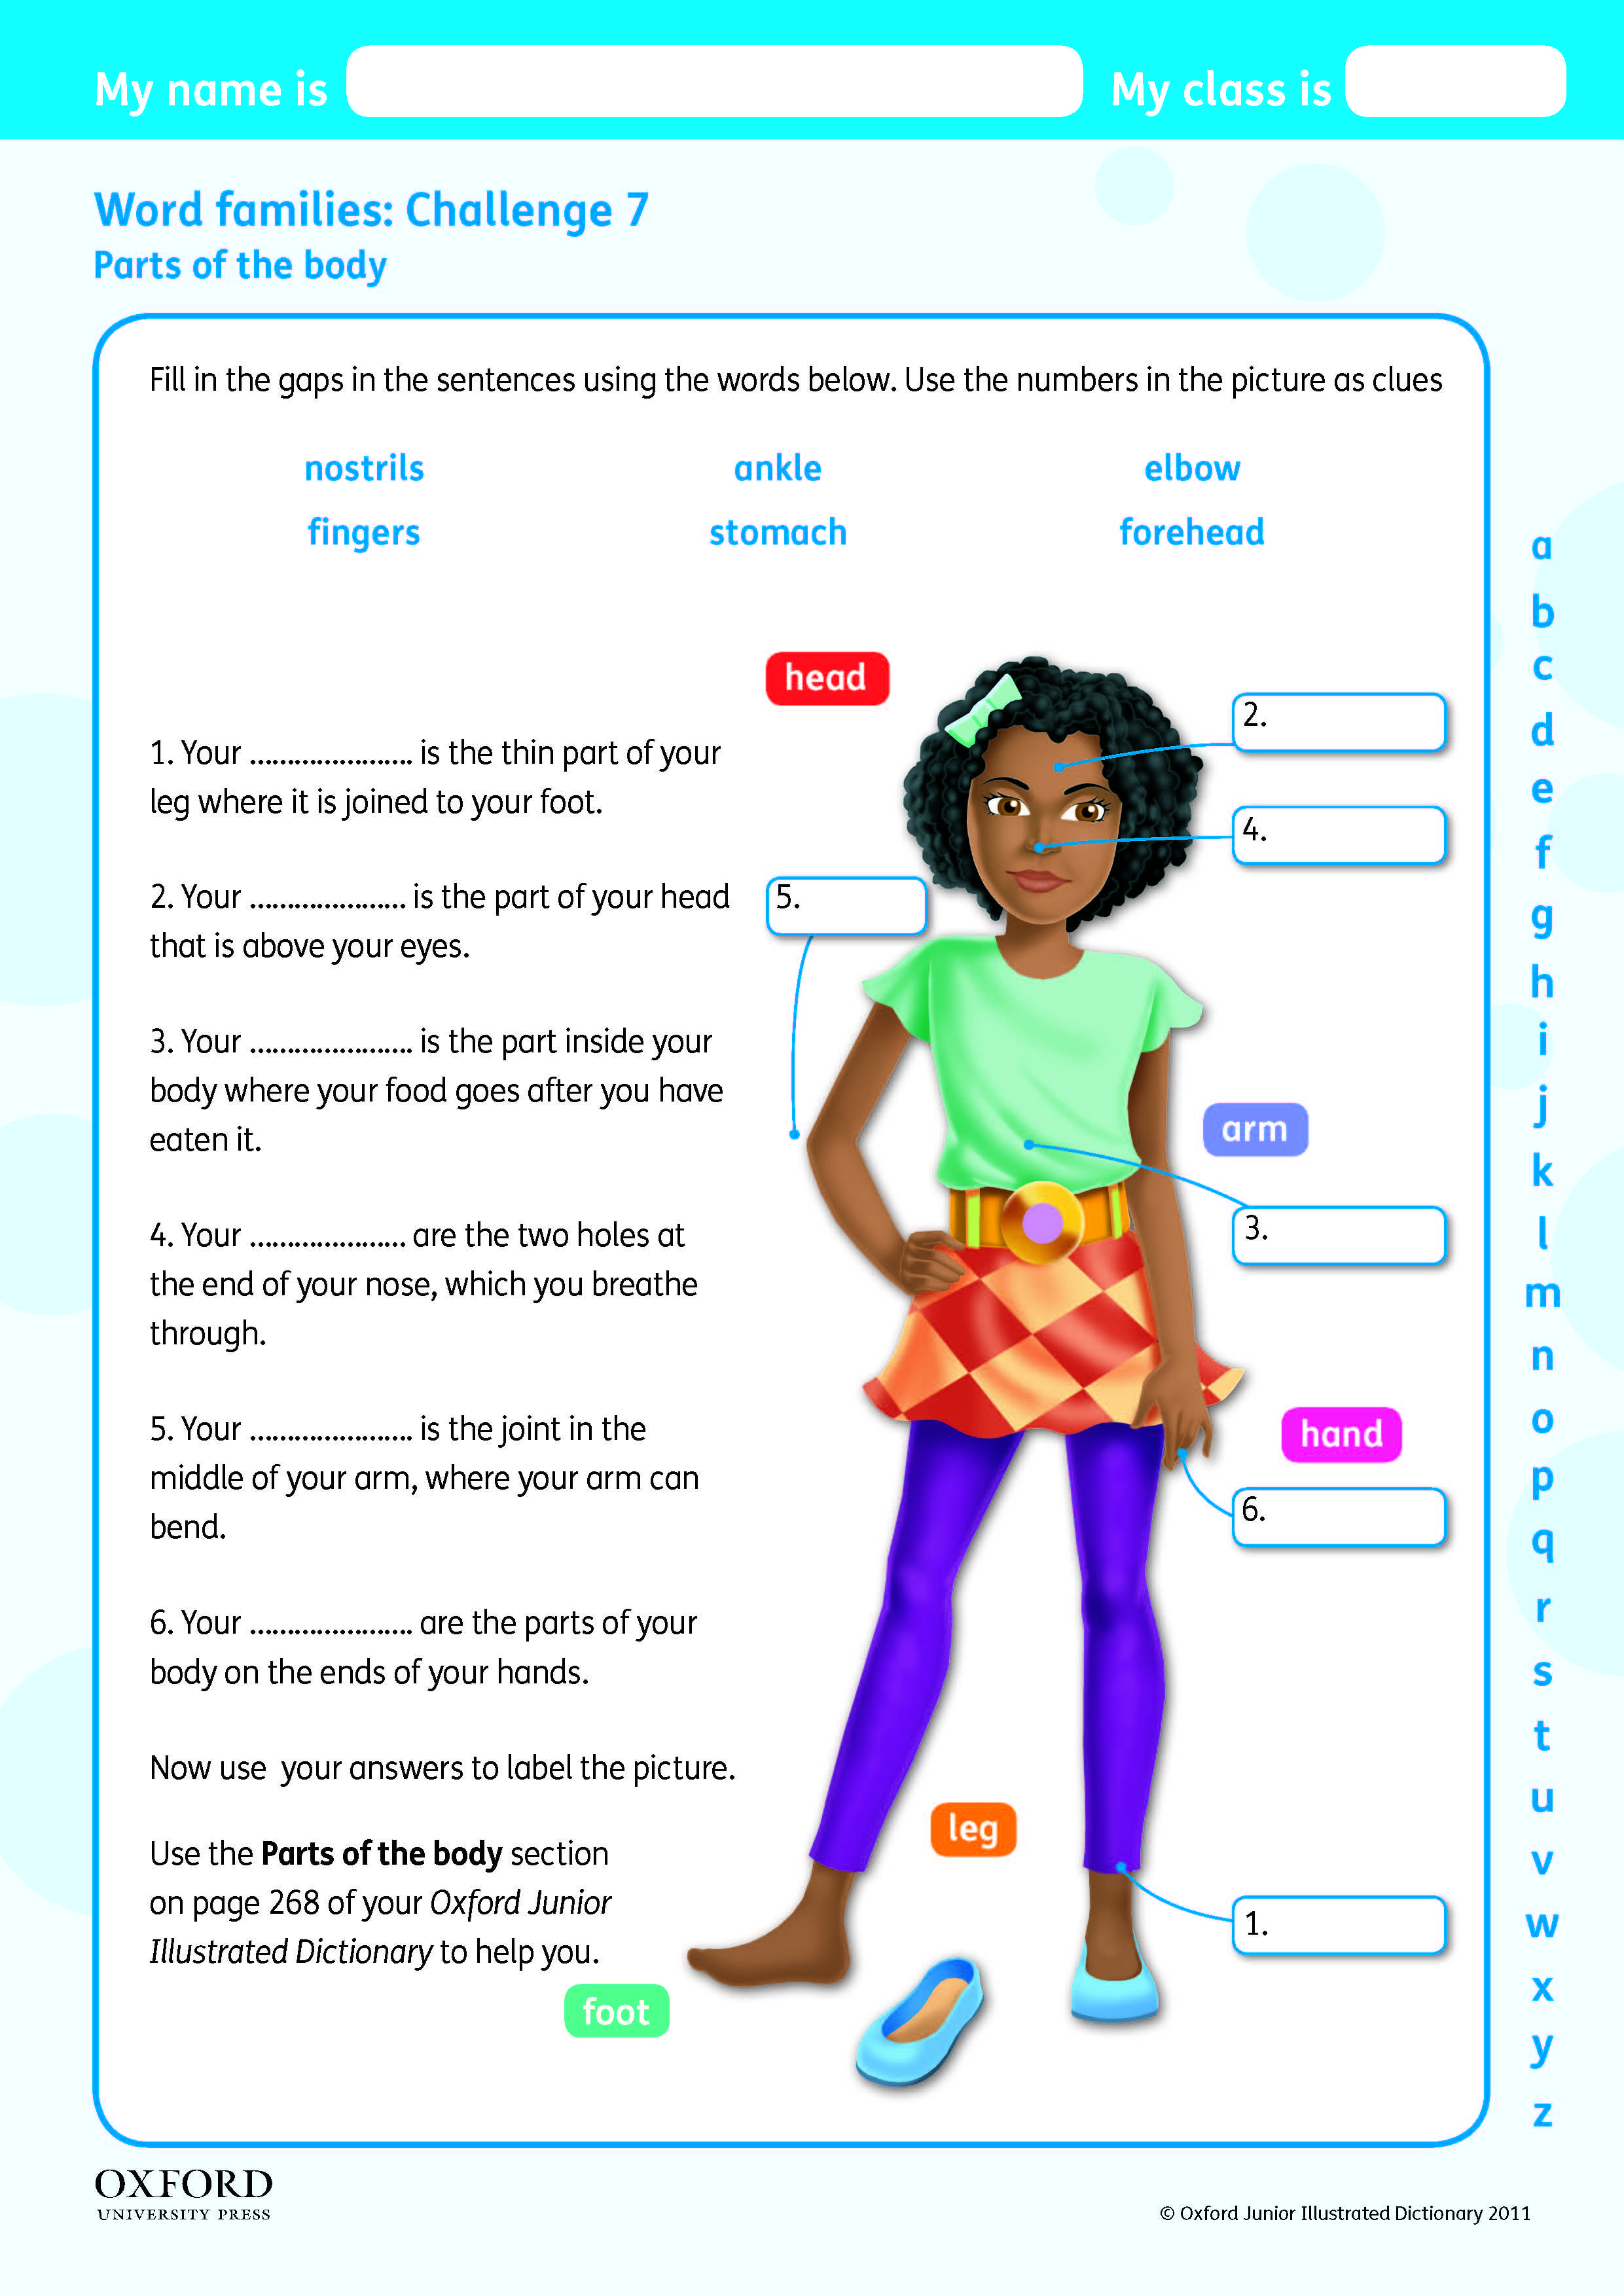 Download Your Free Oxford Junior Illustrated Dictionary